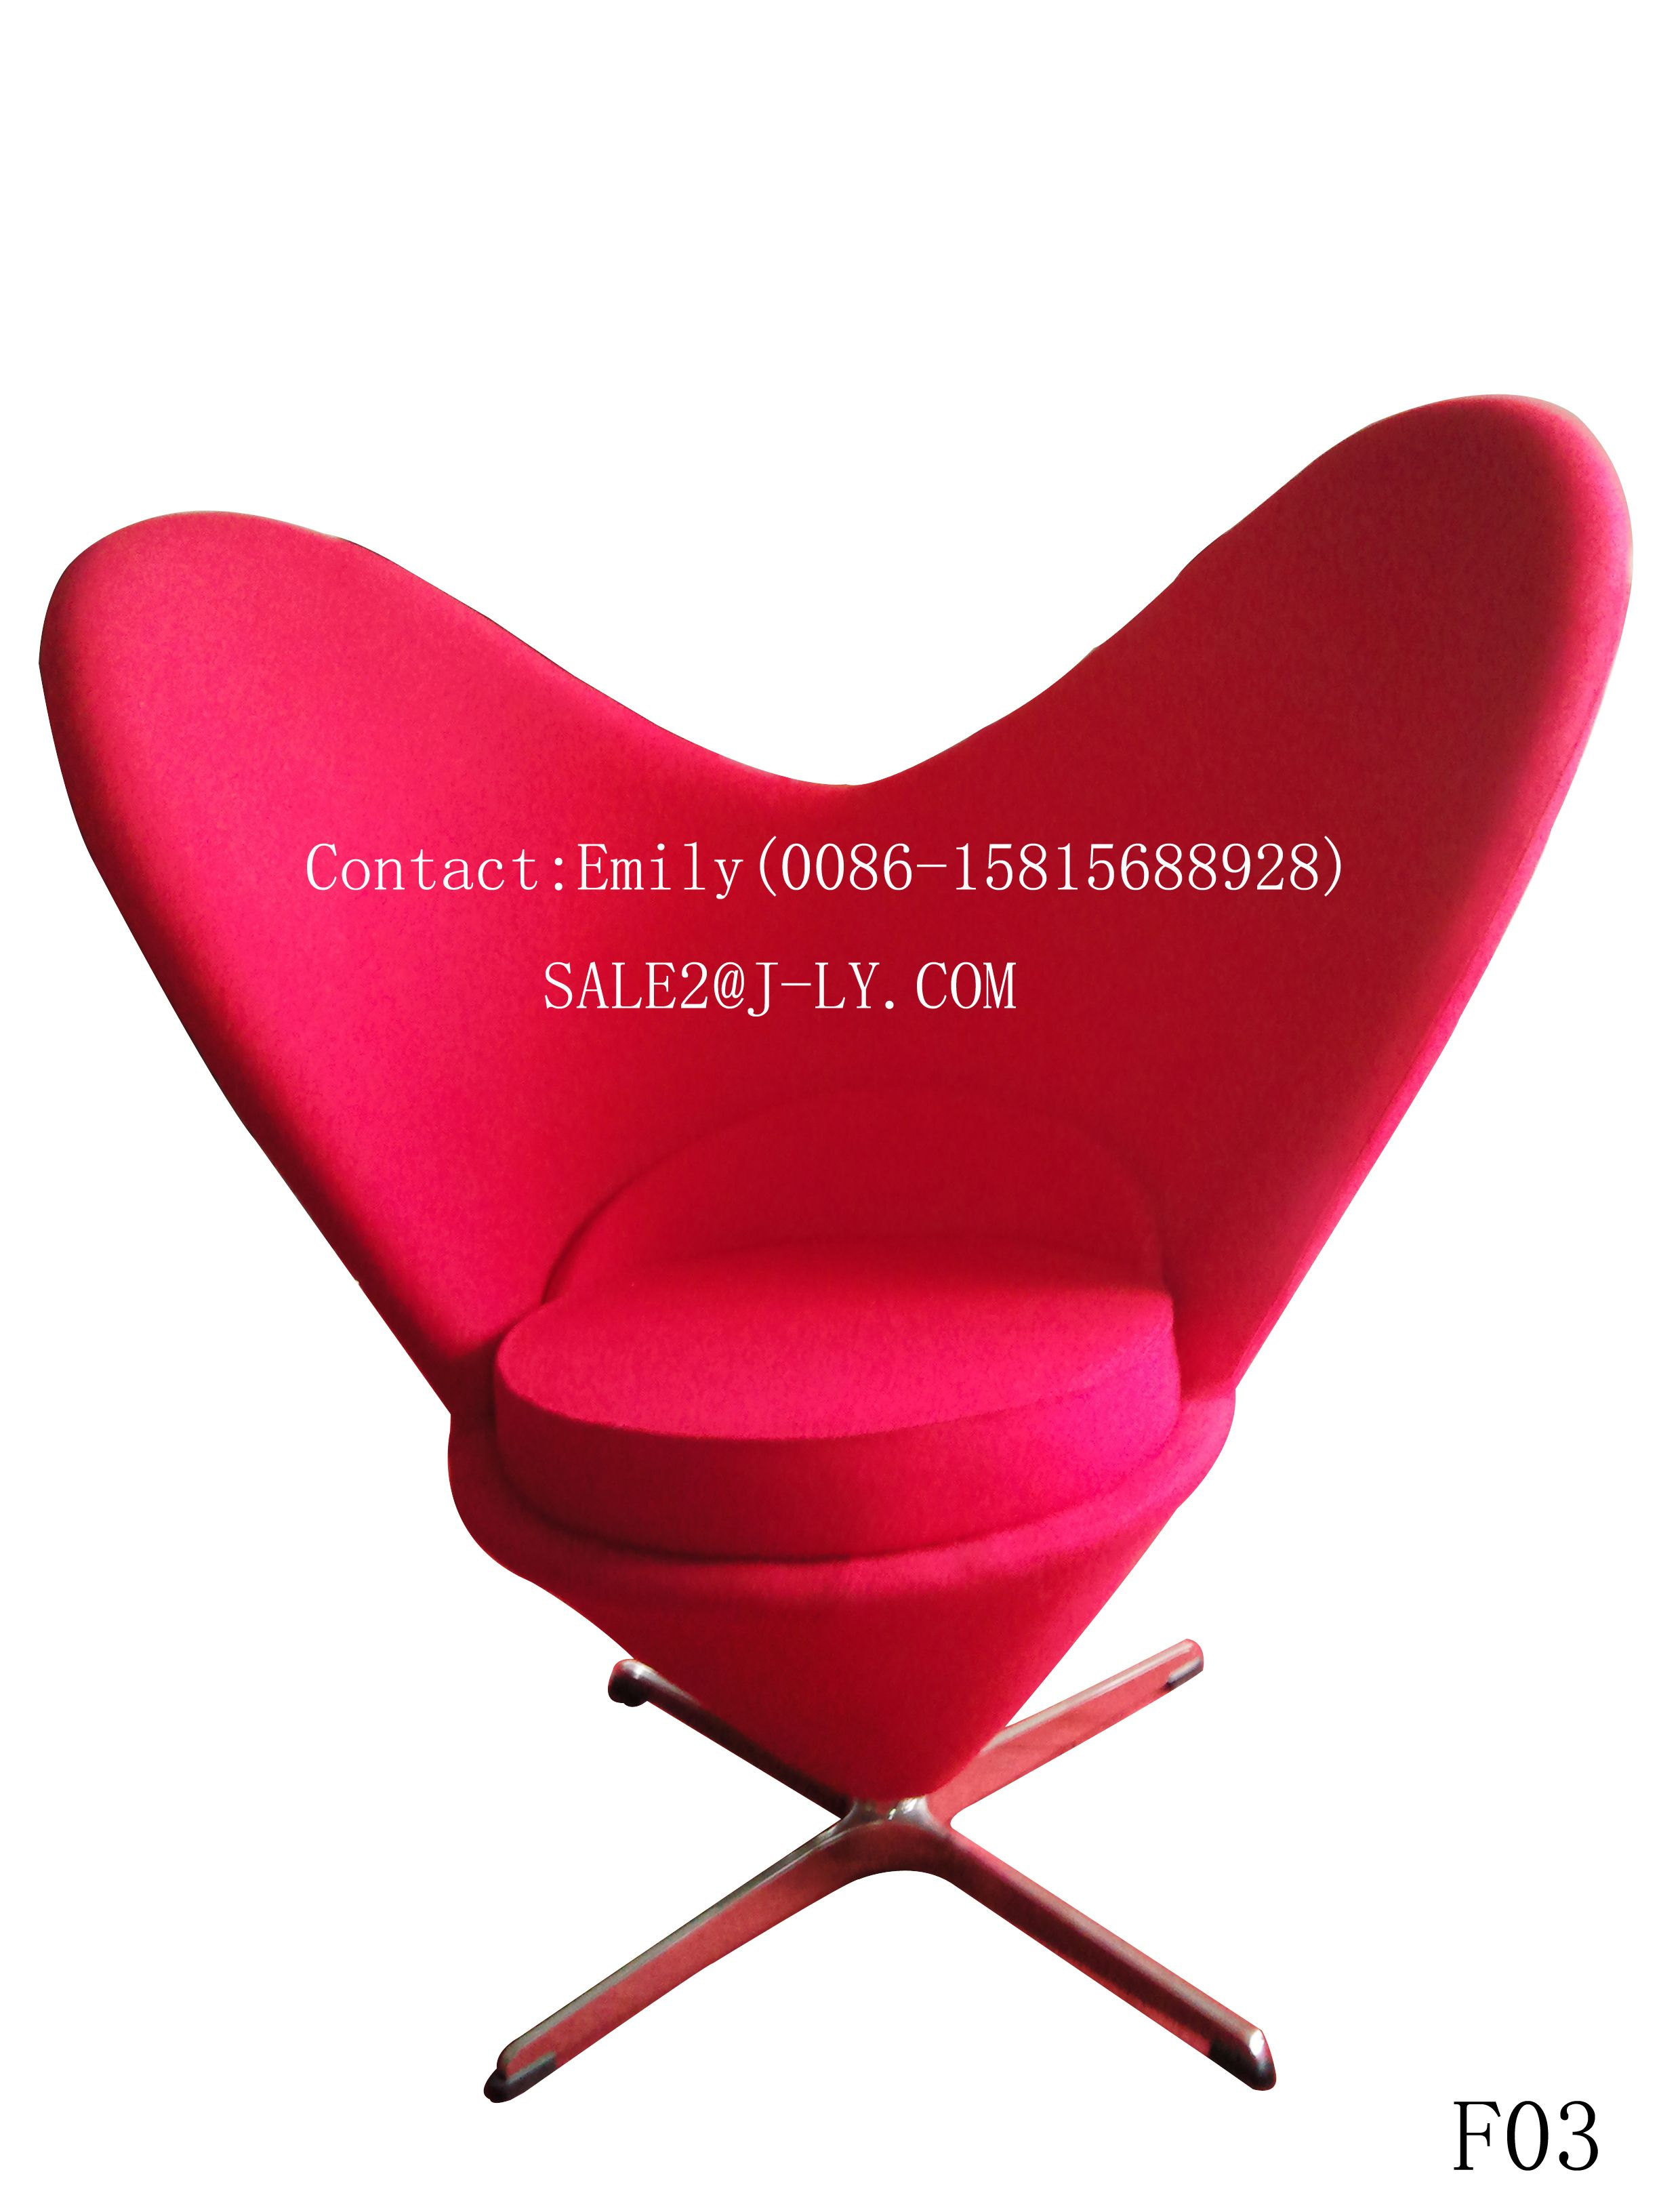 heart shape leisure chair | Leisure Chair | Pinterest